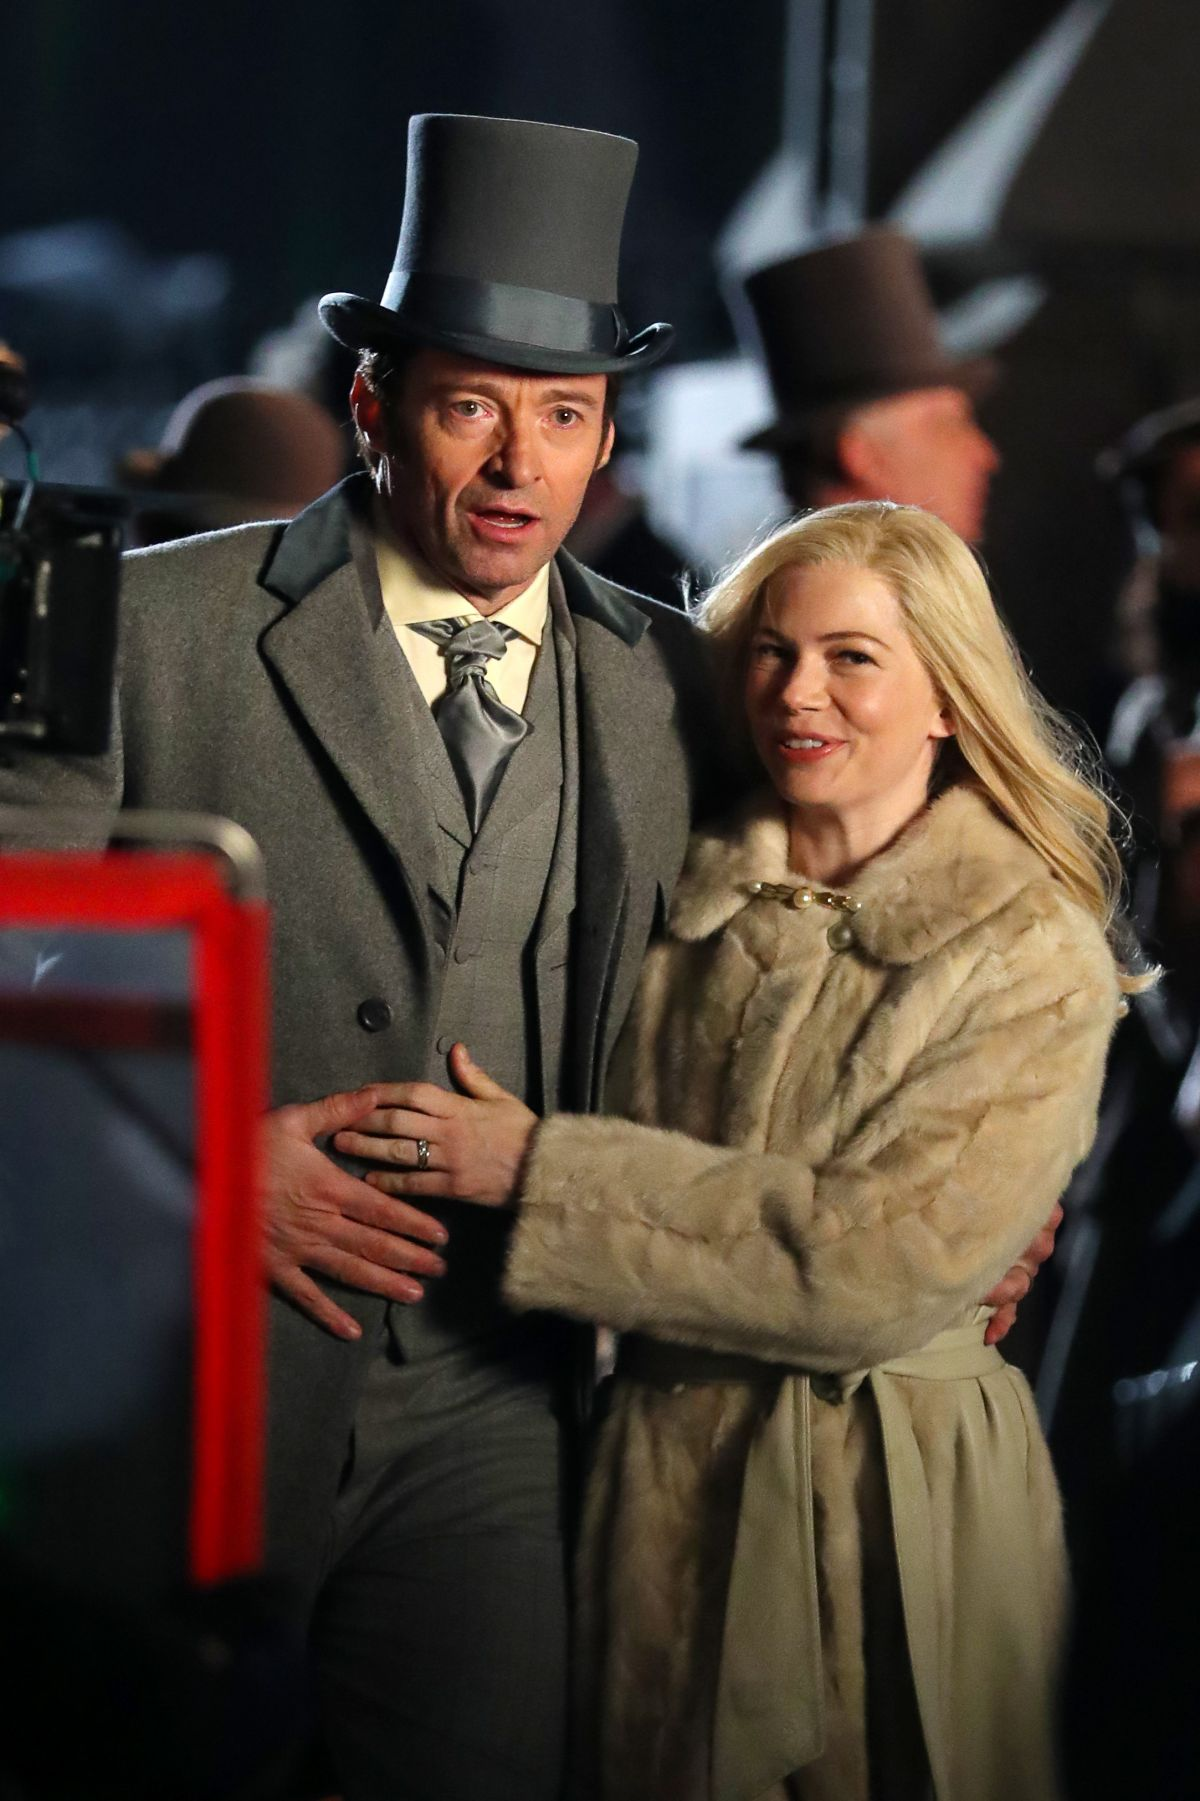 MICHELLE WILLIAMS and Hugh Jackman on the Set of The Greatest Showman 04/06/2017